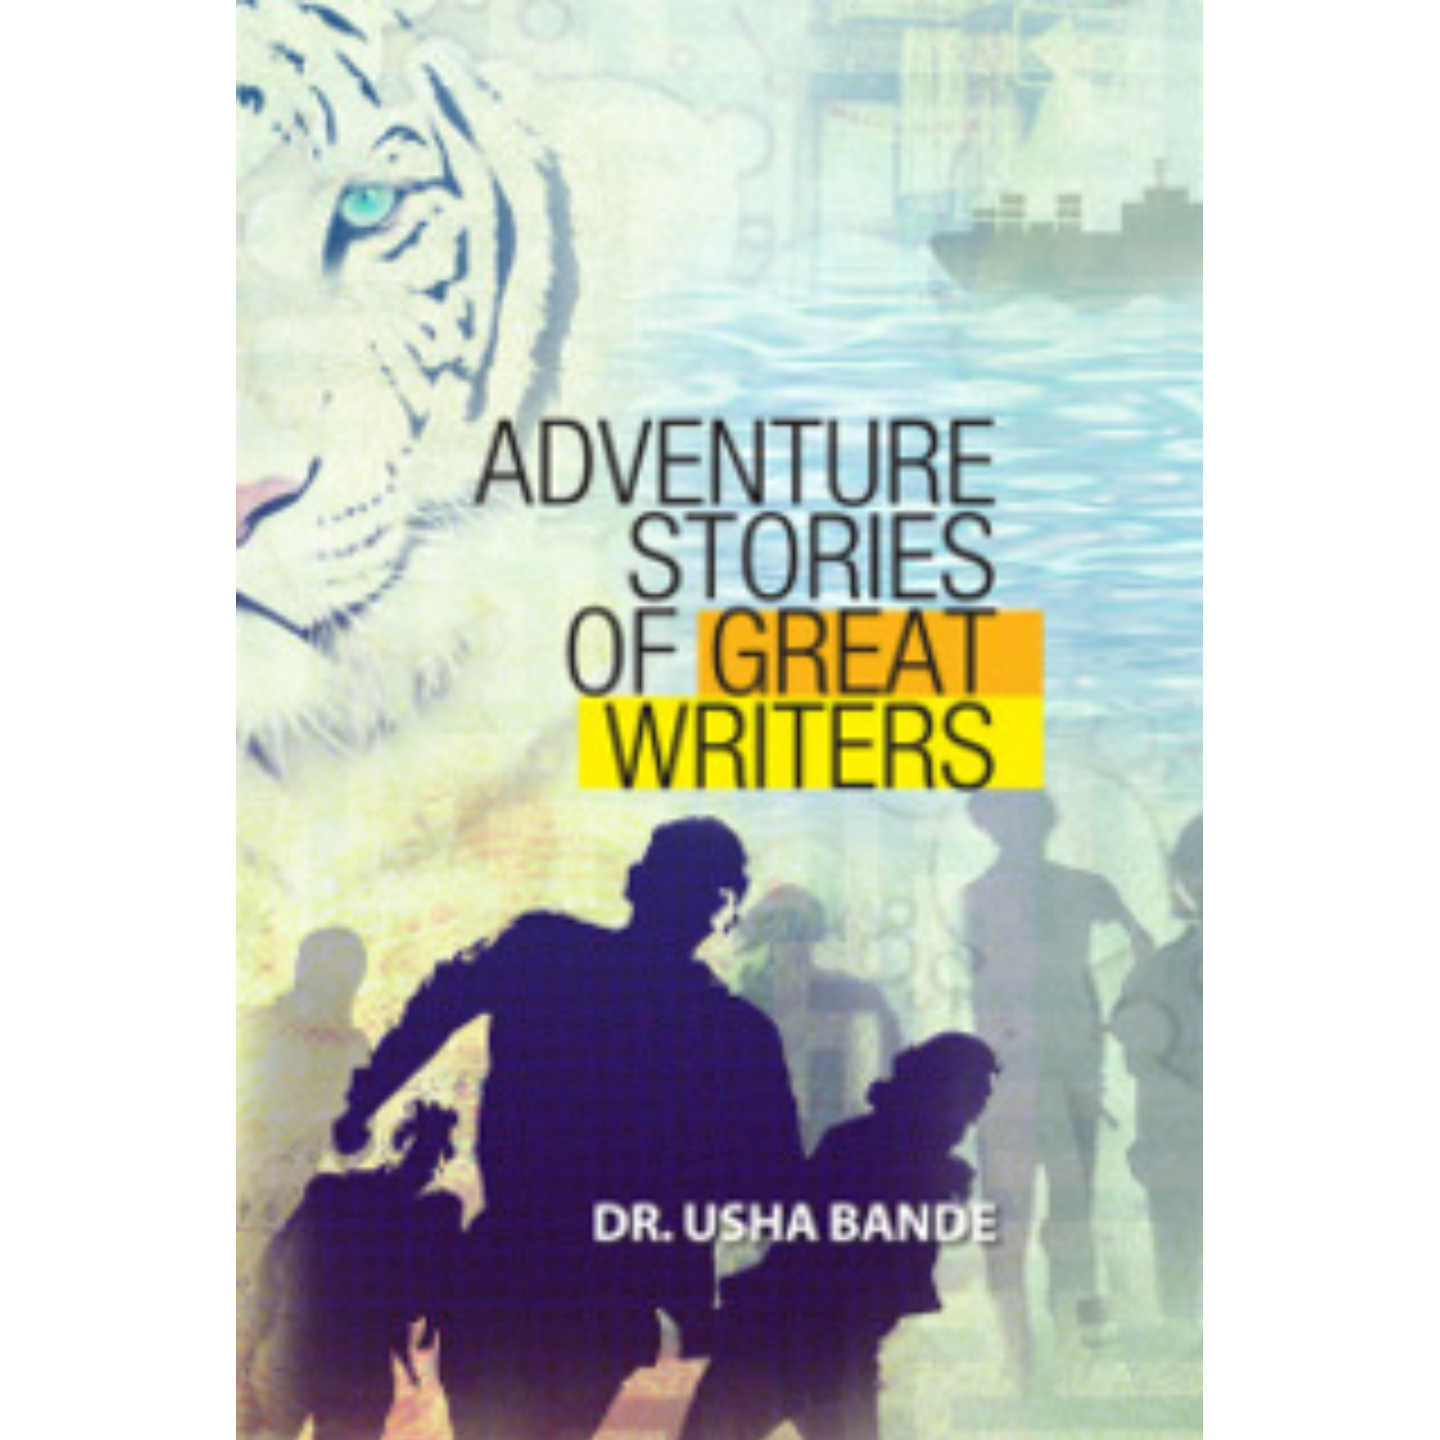 Adventure Stories of Great Writers by Dr. Usha Bande